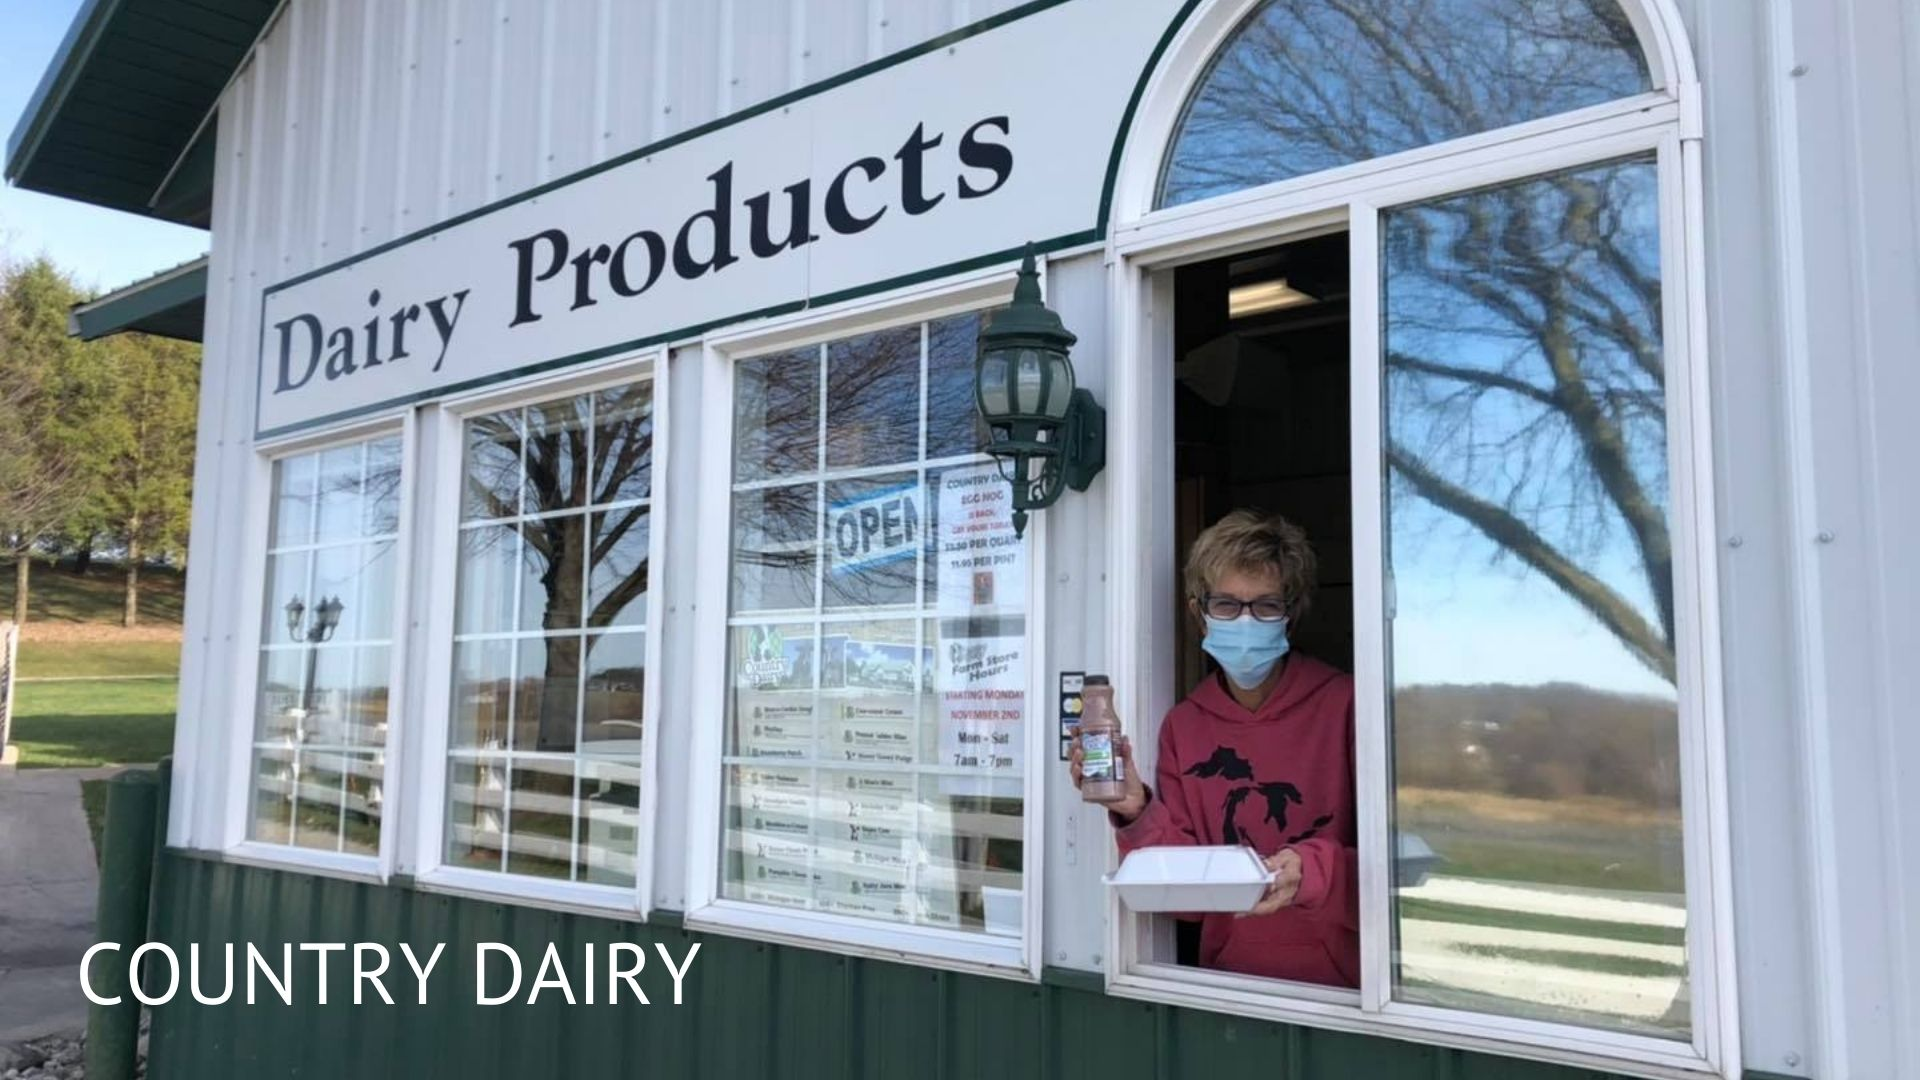 country dairy (1).jpg